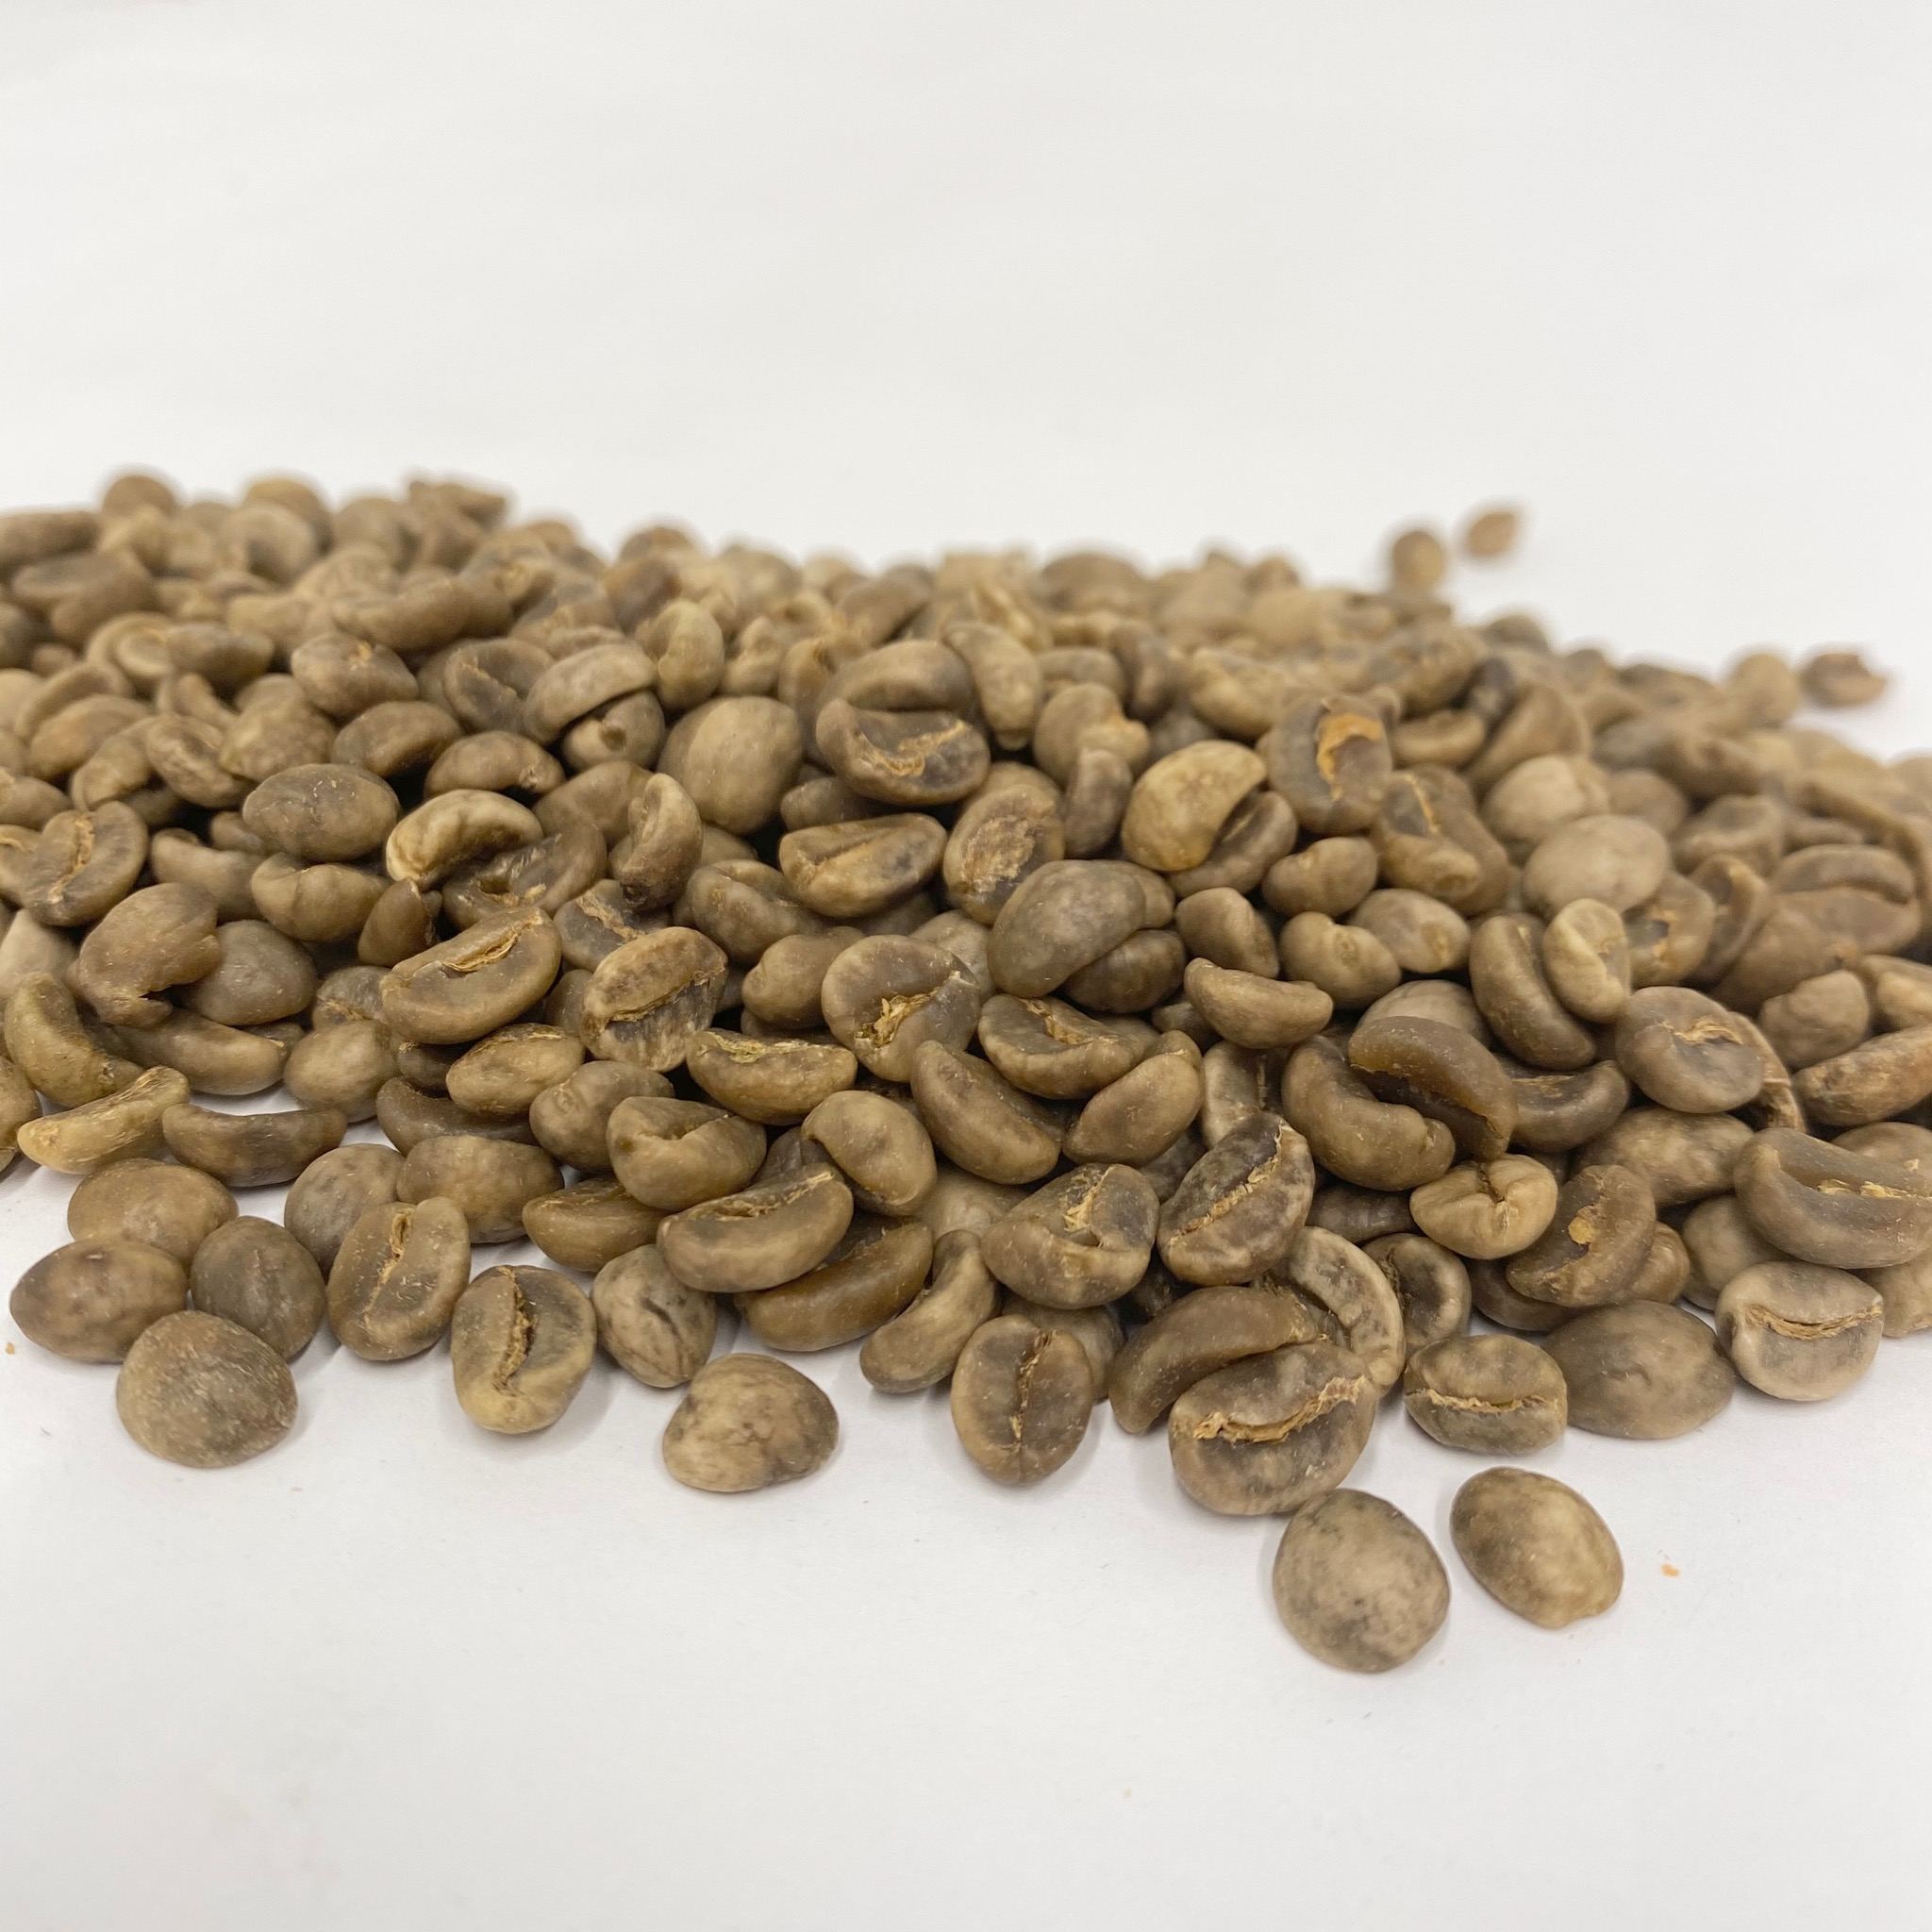 Colombia Decaf EA Process Green Coffee Beans